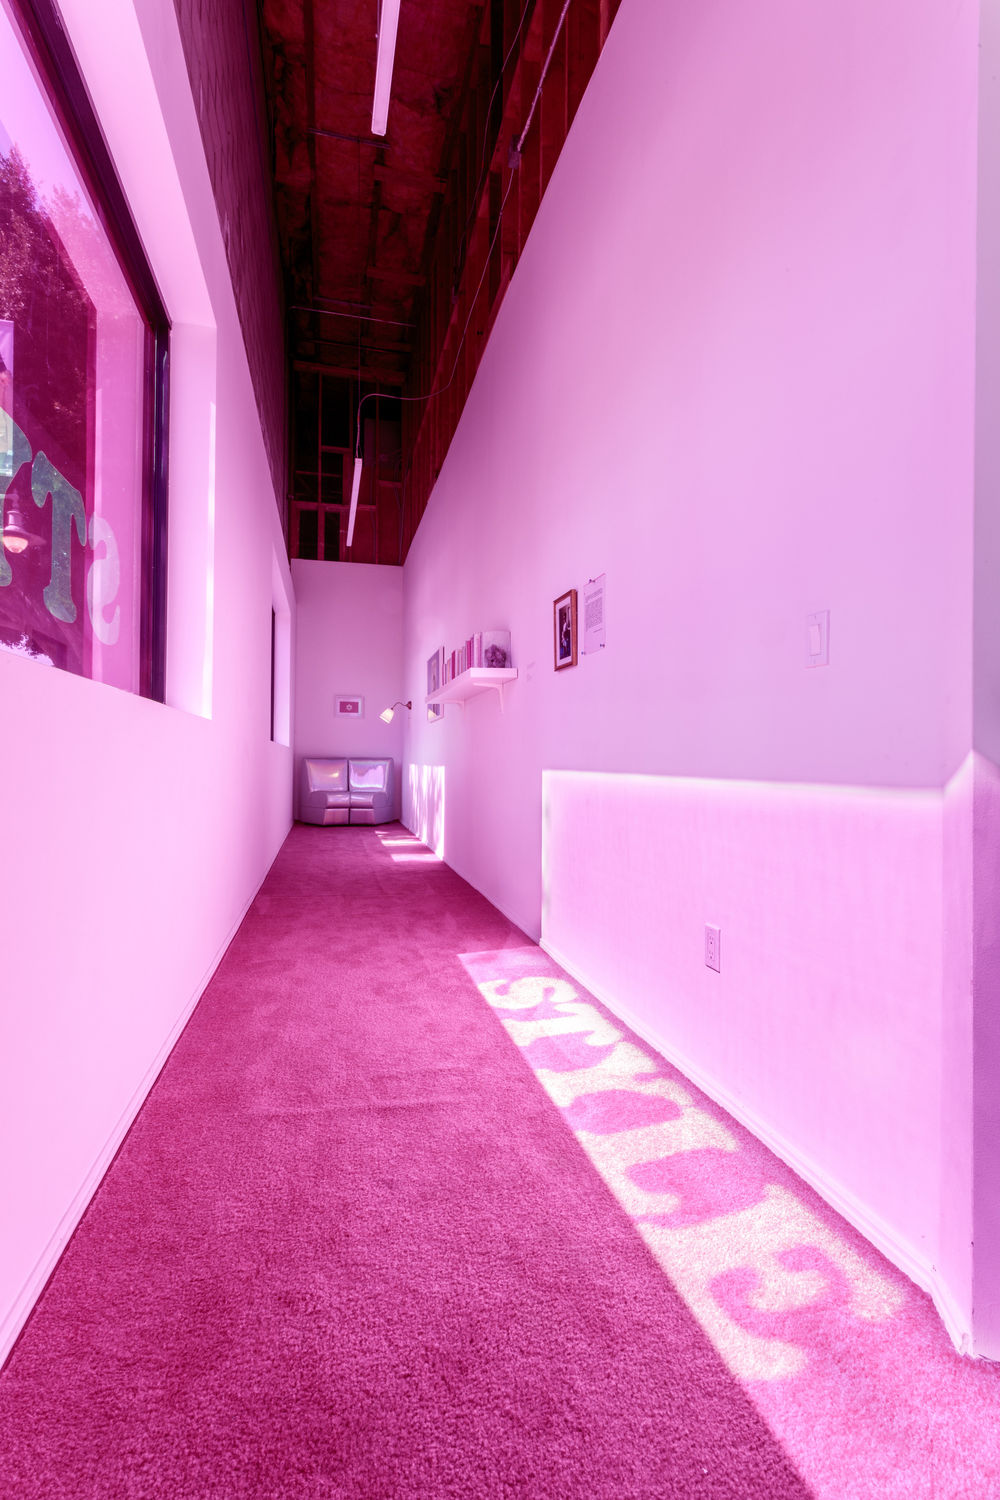 A hallway illuminated with pink light